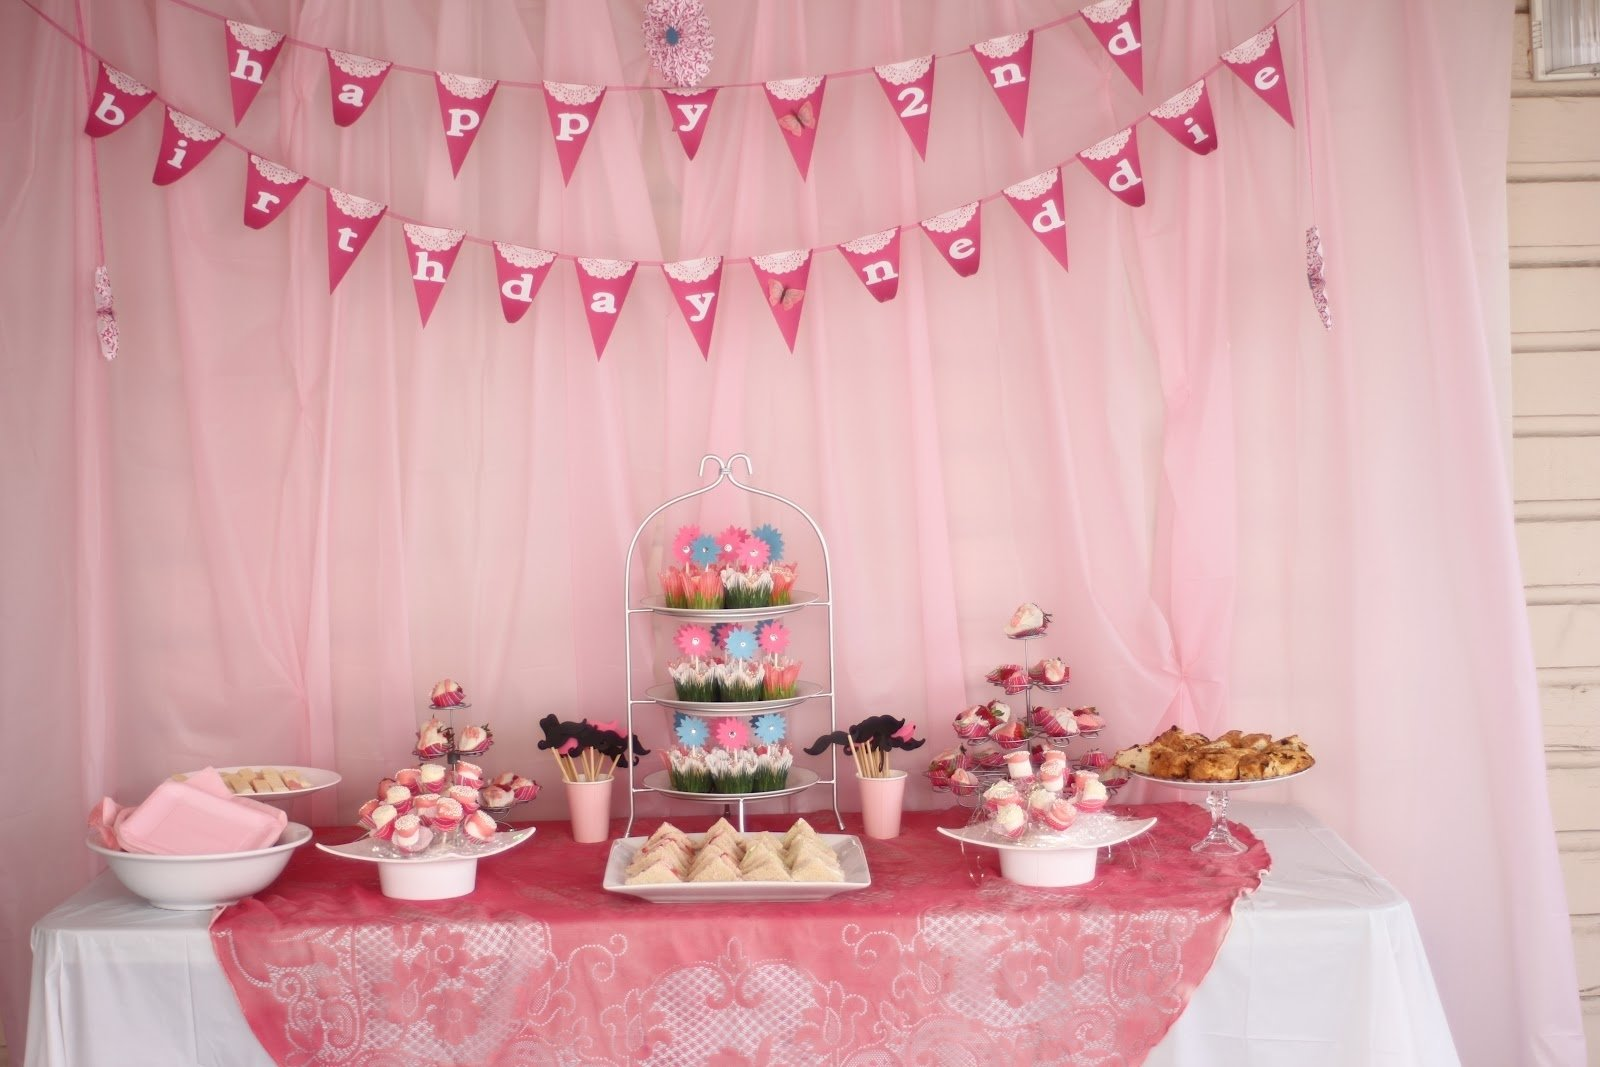 10 Great 2 Yr Old Birthday Party Ideas Girl For Year Olds Home